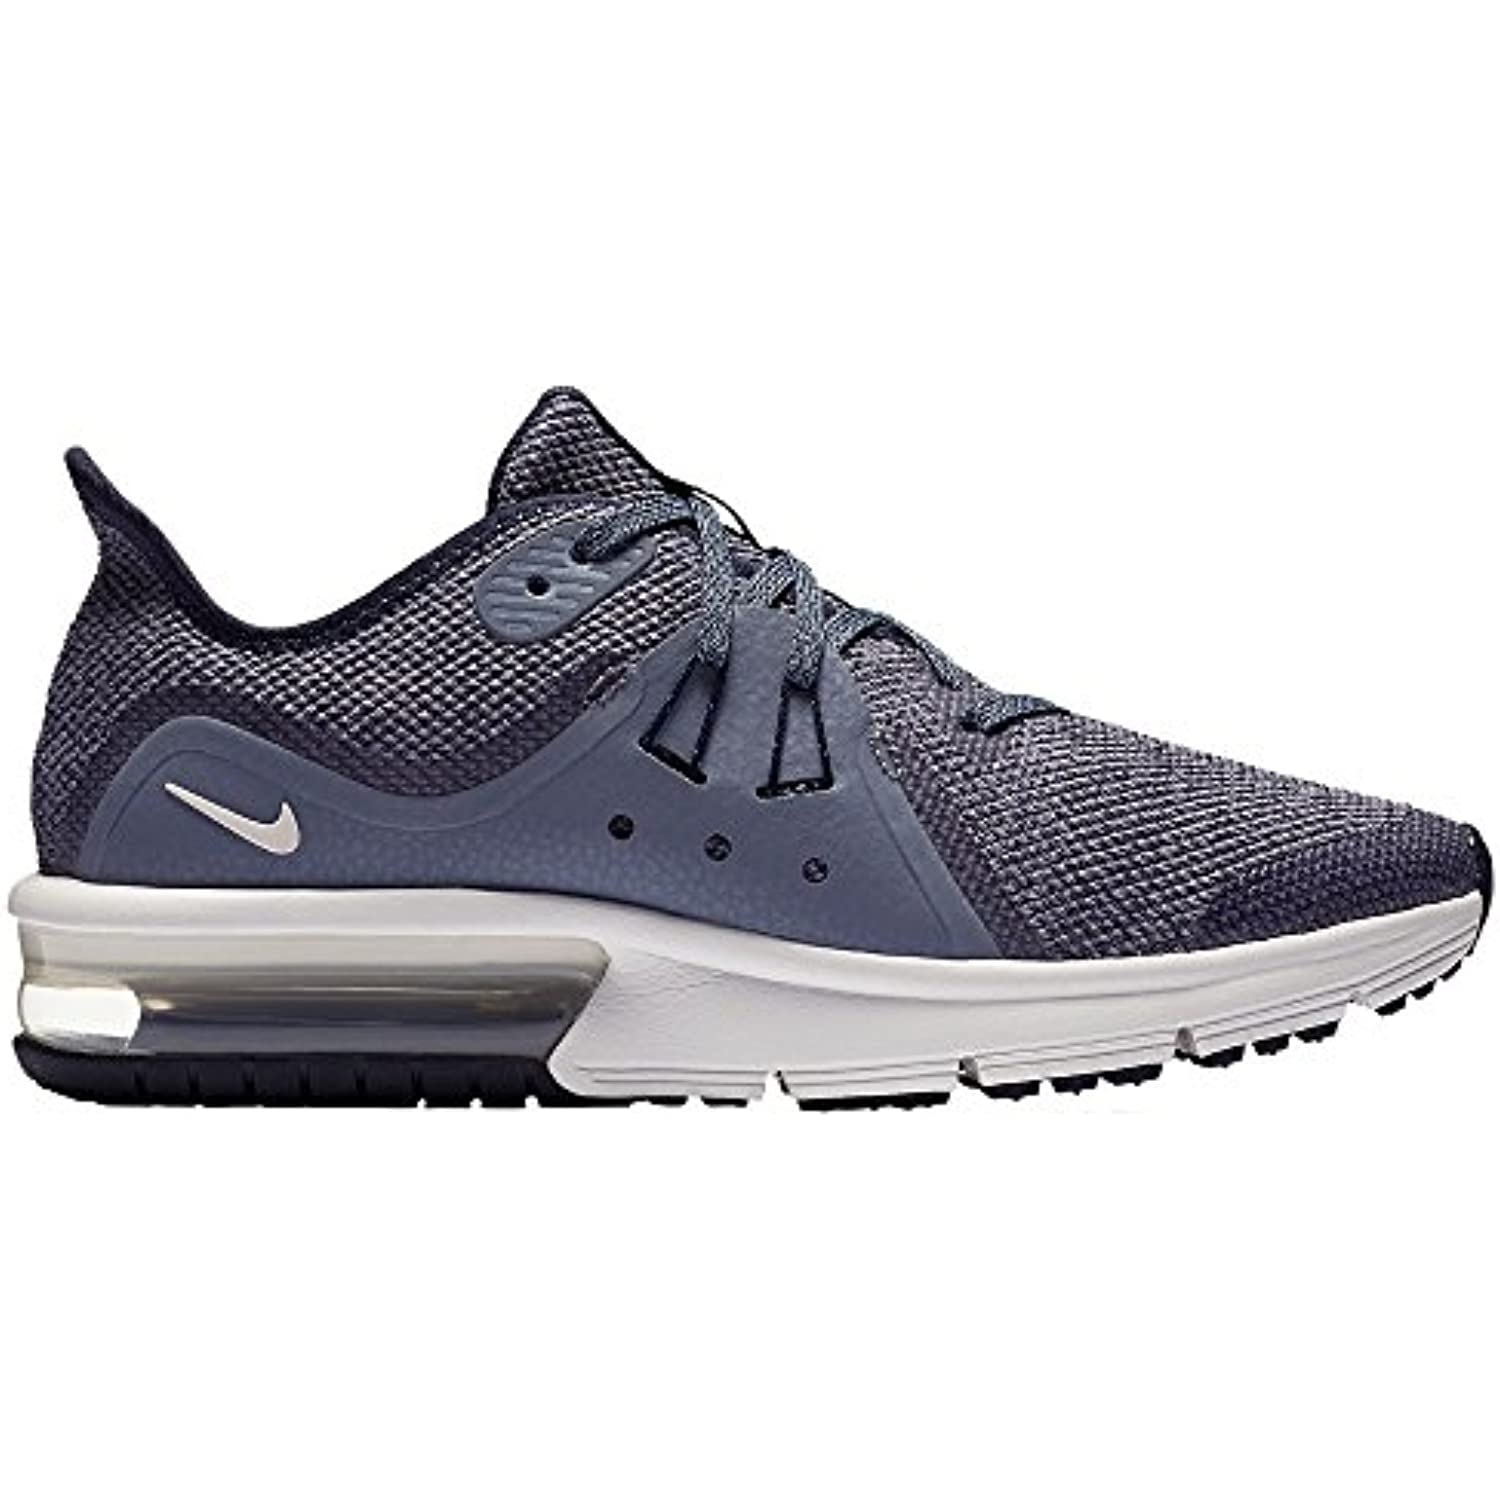 Compétition Air De Chaussures Nike Max gs Running Sequent 3 7TOAOwx